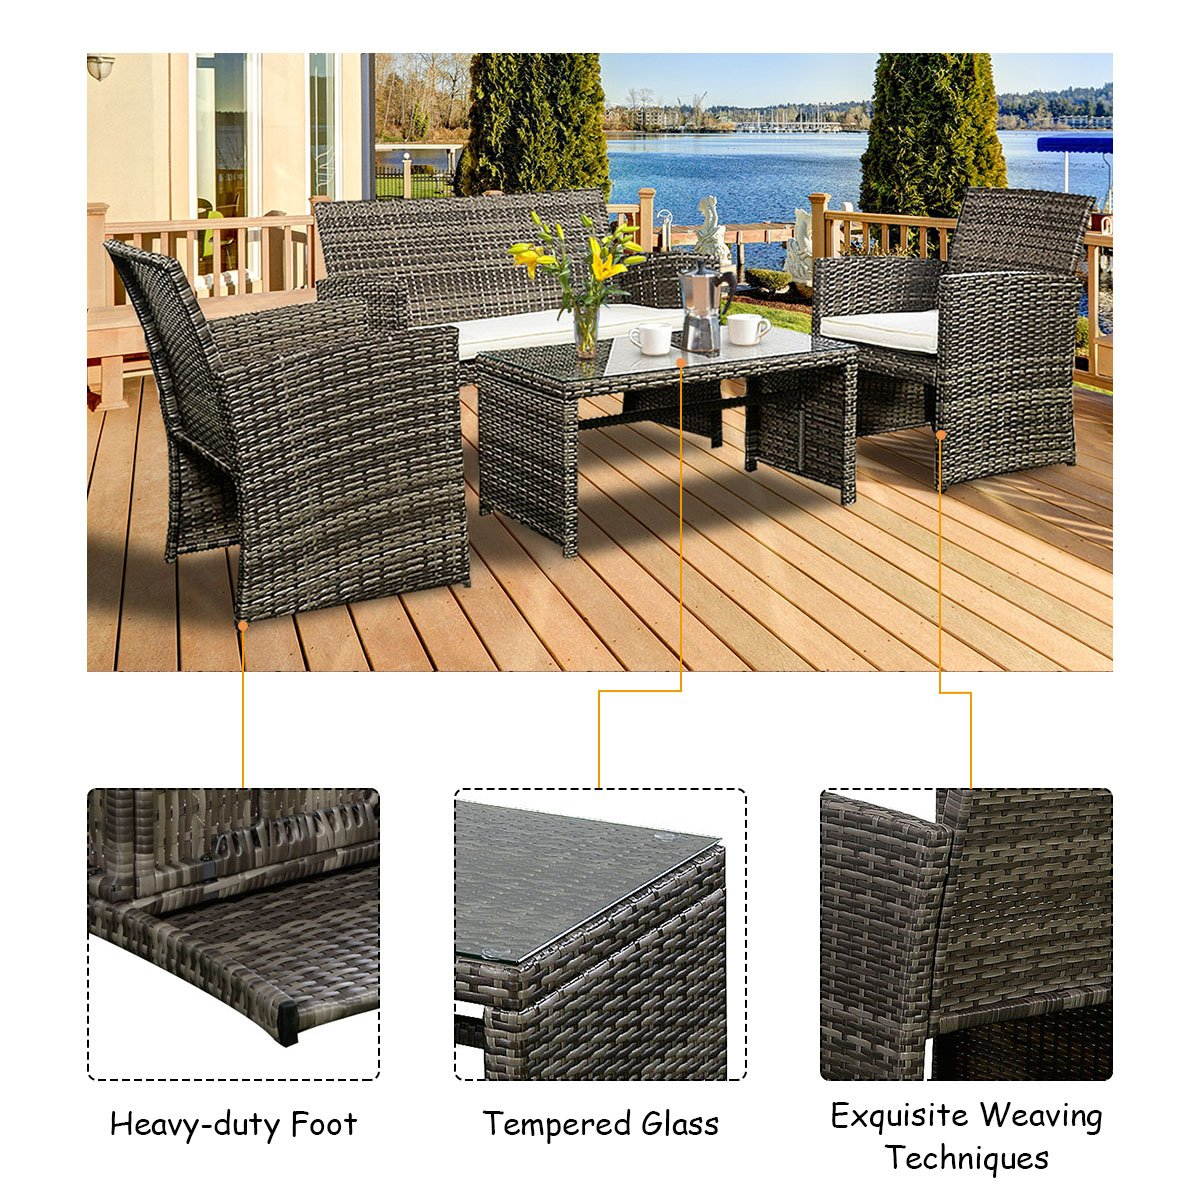 Goplus 4 PC Rattan Patio Furniture Set Garden Lawn Sofa Cushioned Seat Wicker Sofa (Mix Gray) by Goplus (Image #6)